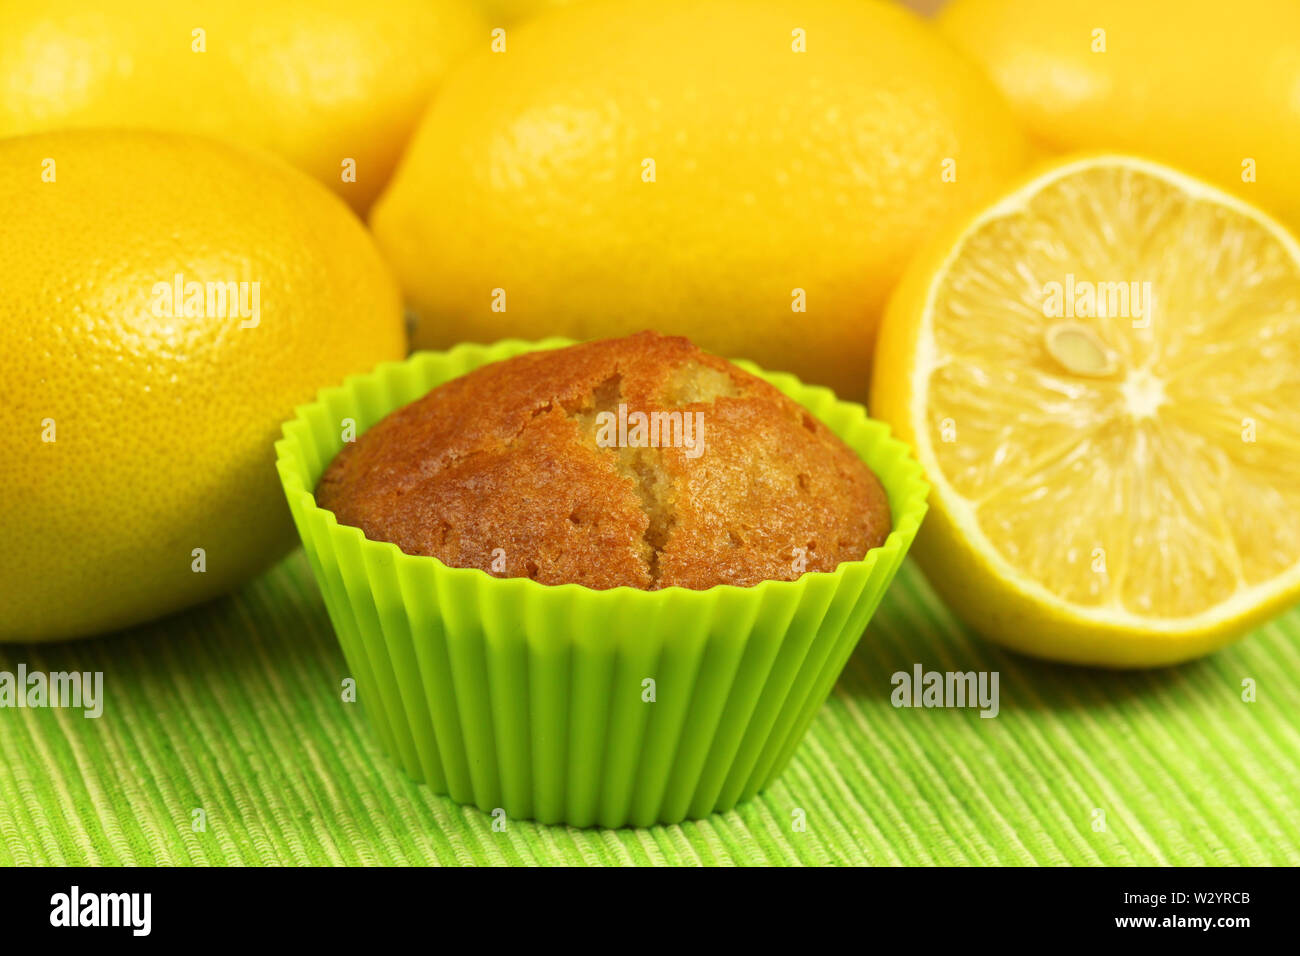 Lemon mufin in green cupcake with whole yellow lemons - Stock Image